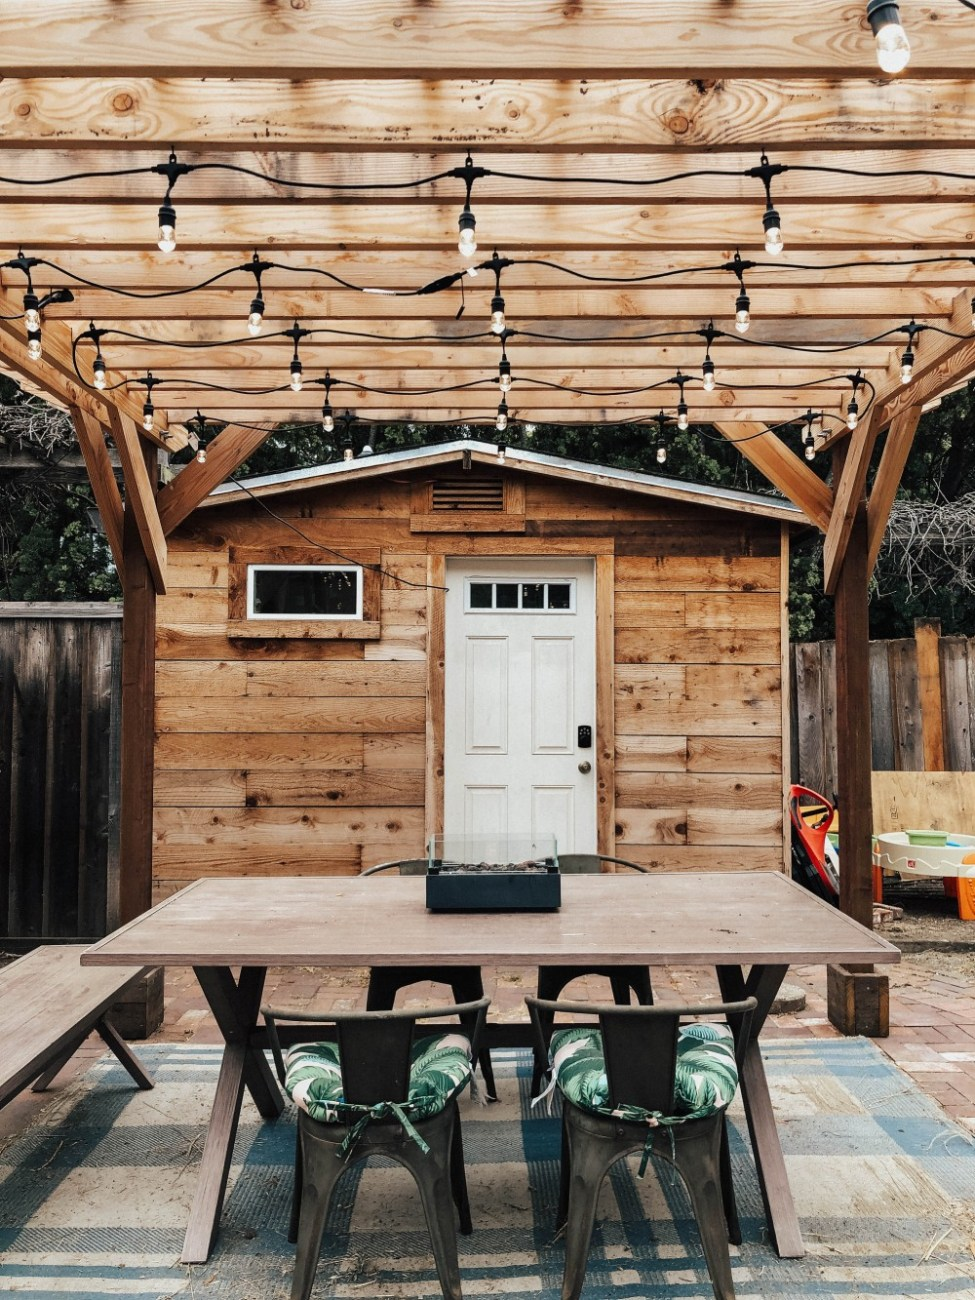 Elevate your outdoor dining experience by hanging cafe lights on your pergola or string them across to a tree. #outdoordining #cafelights #woodpergola #homeupdates